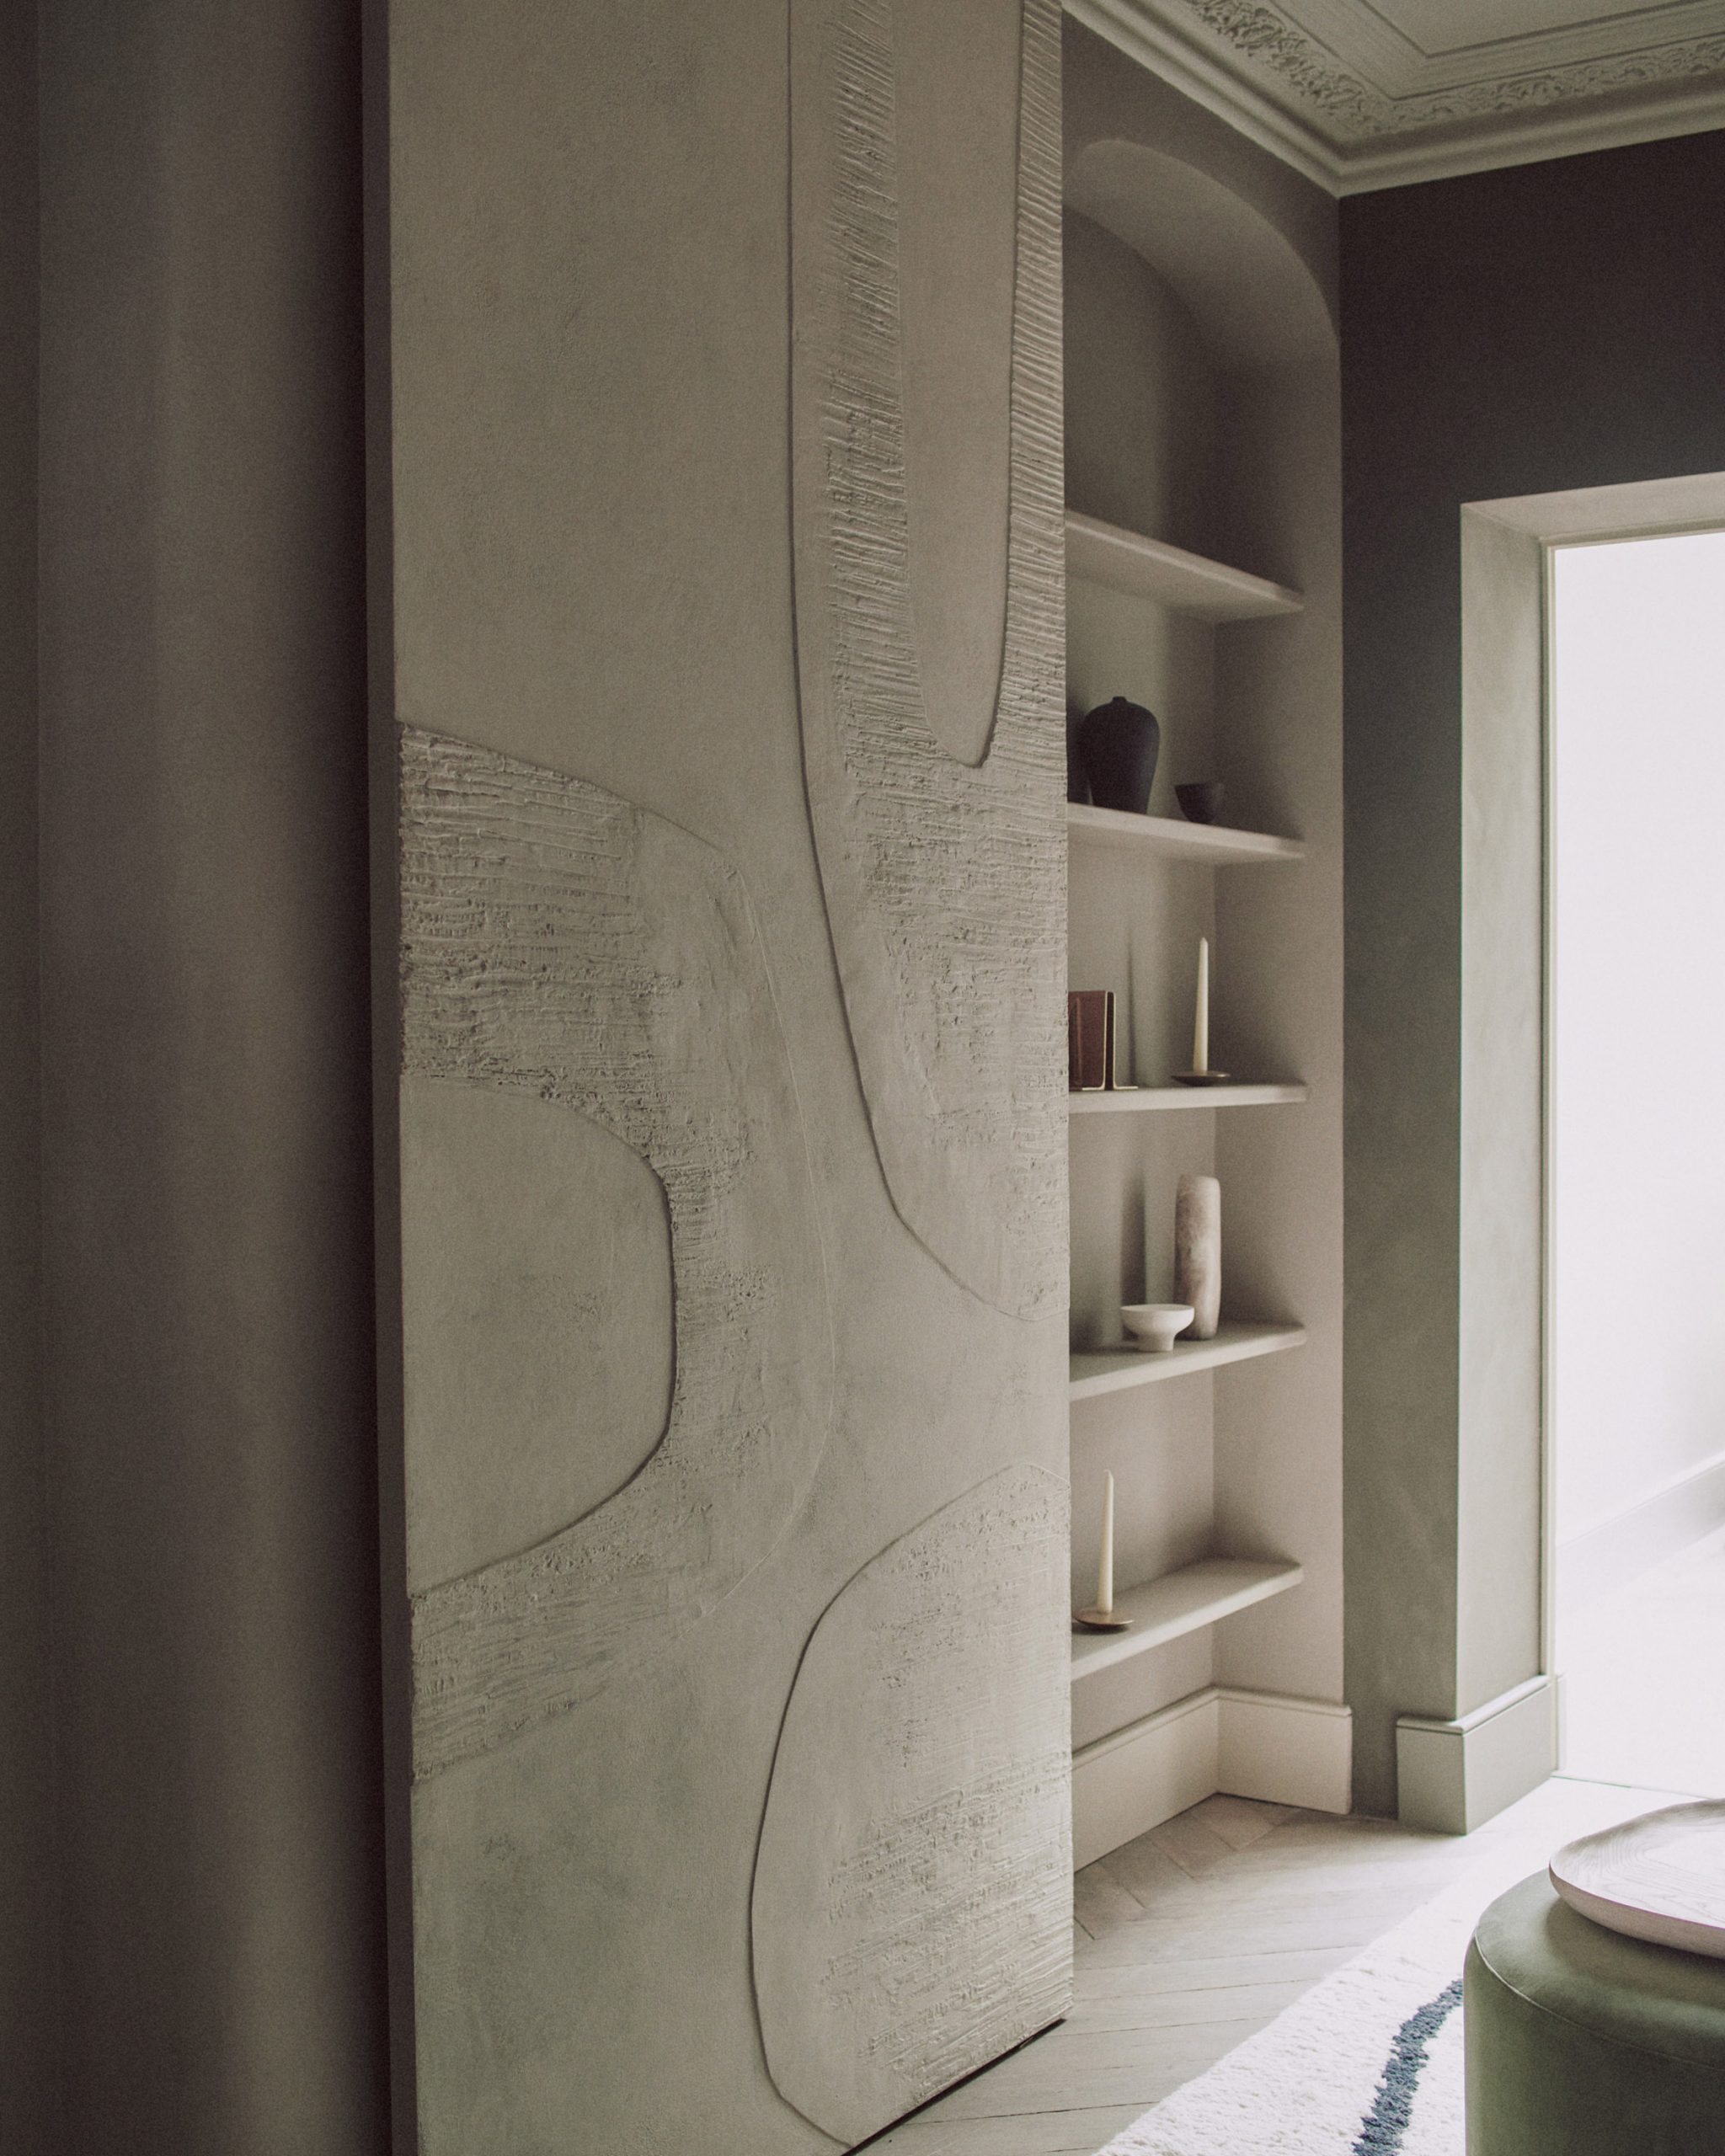 Shelving from House of Grey's Highgate House interior